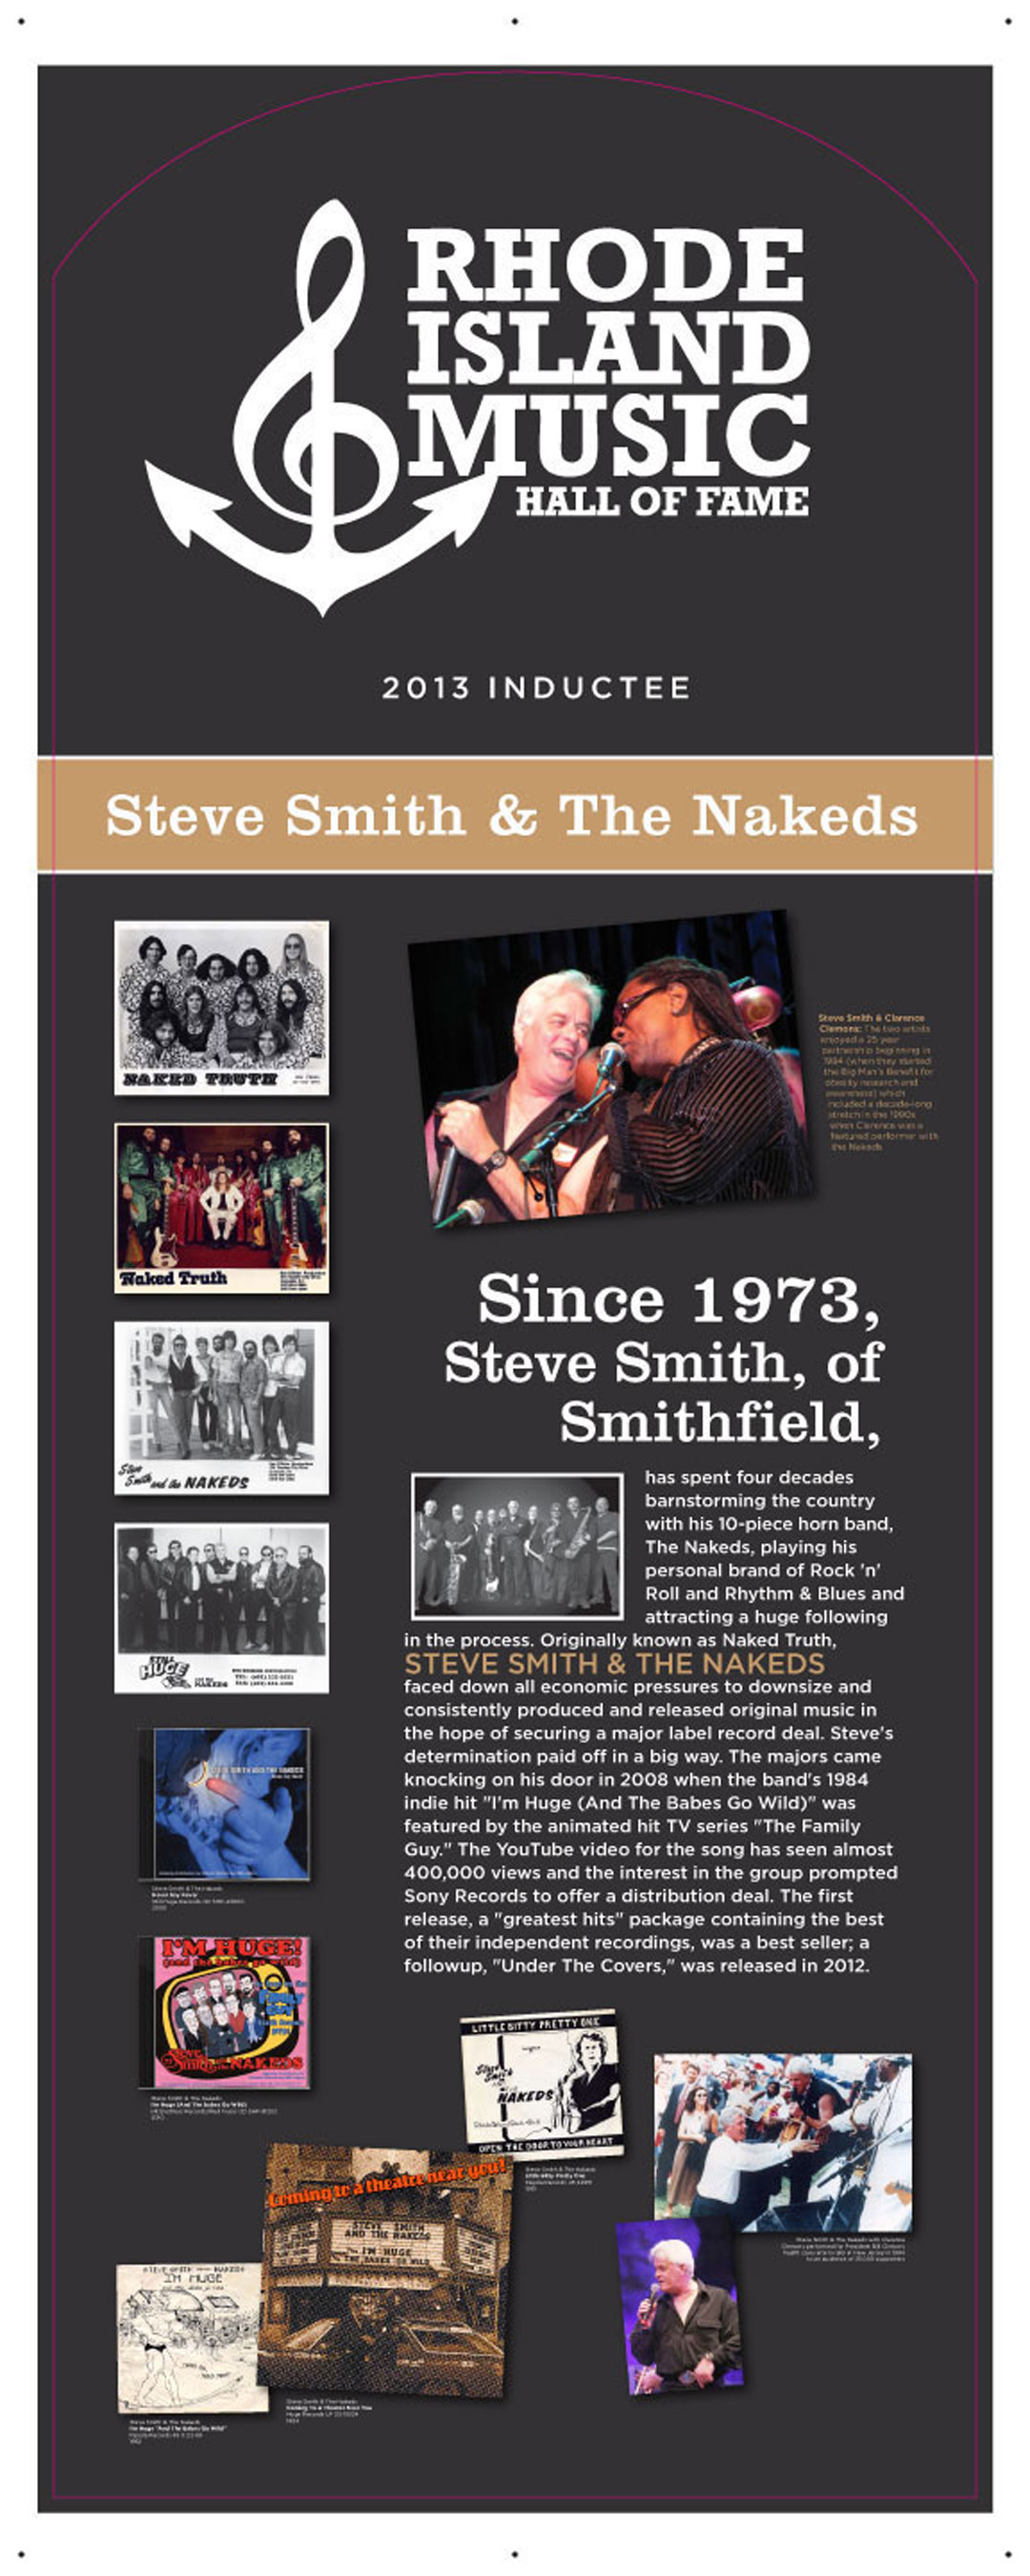 Steve smith and the naked band